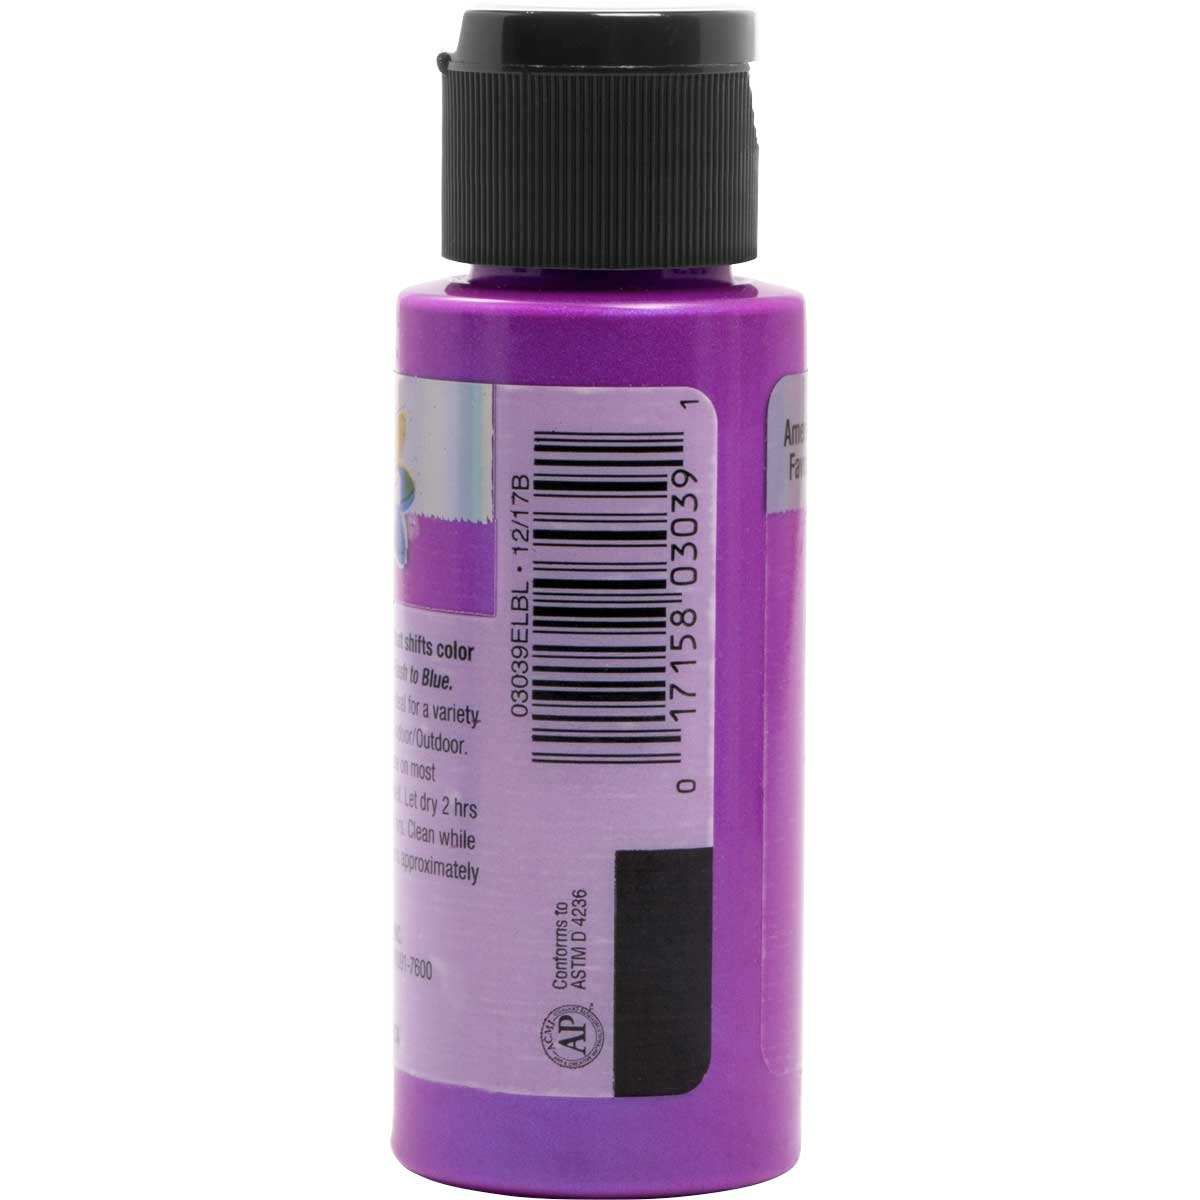 Delta Ceramcoat ® Acrylic Paint - Flash Metallic Purple, 2 oz. - 03039